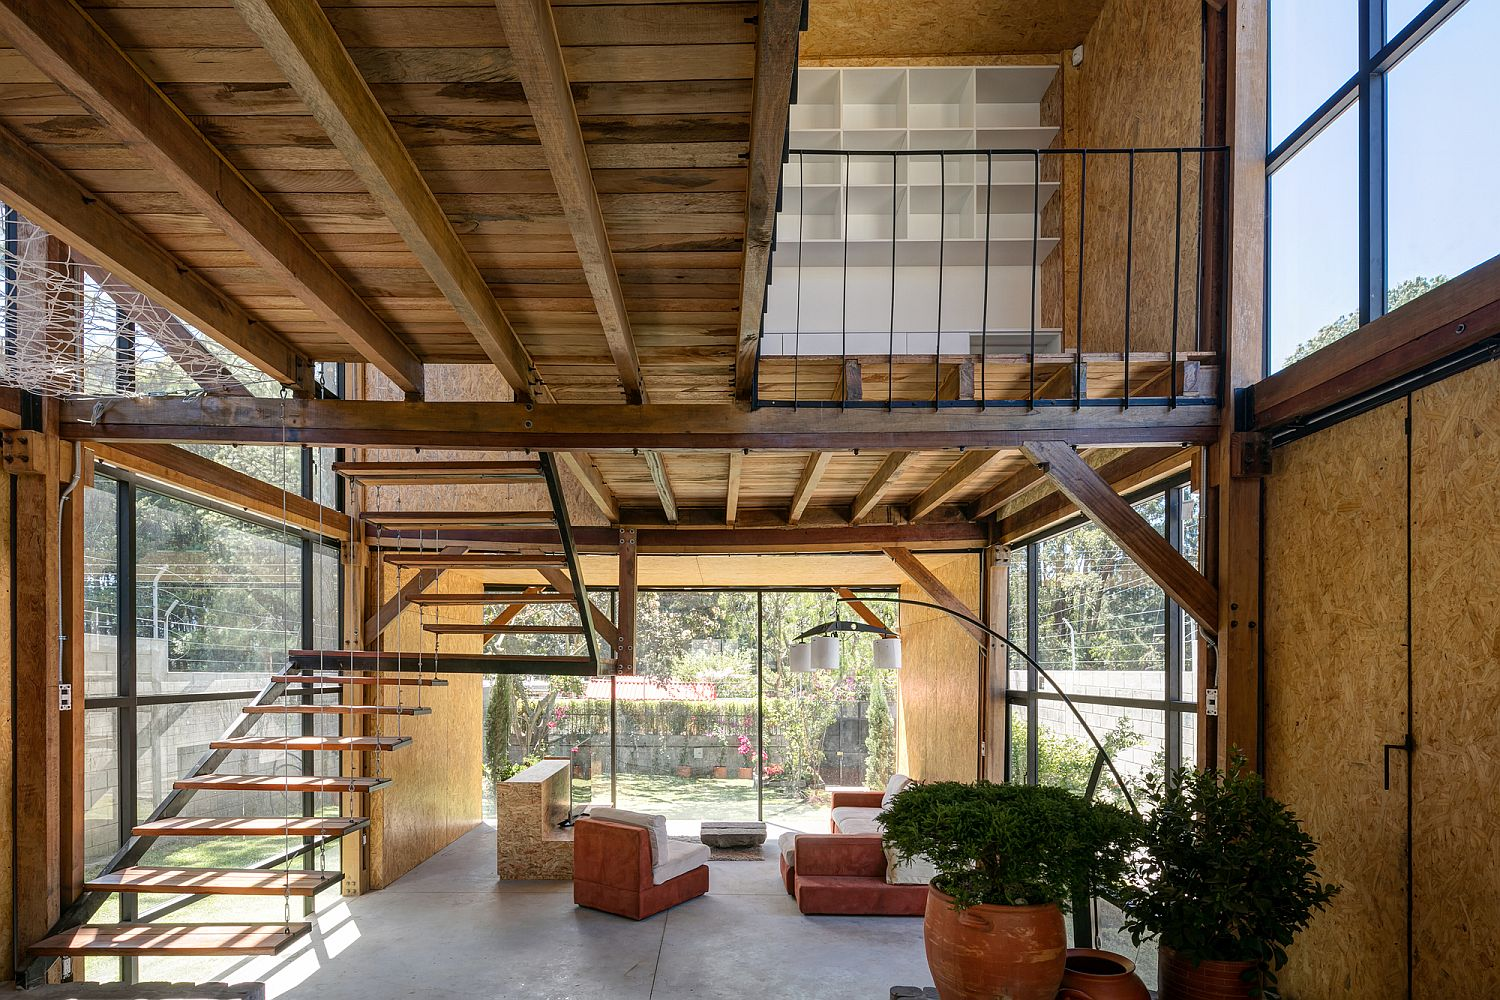 Interior of the family home clad in OSB panels